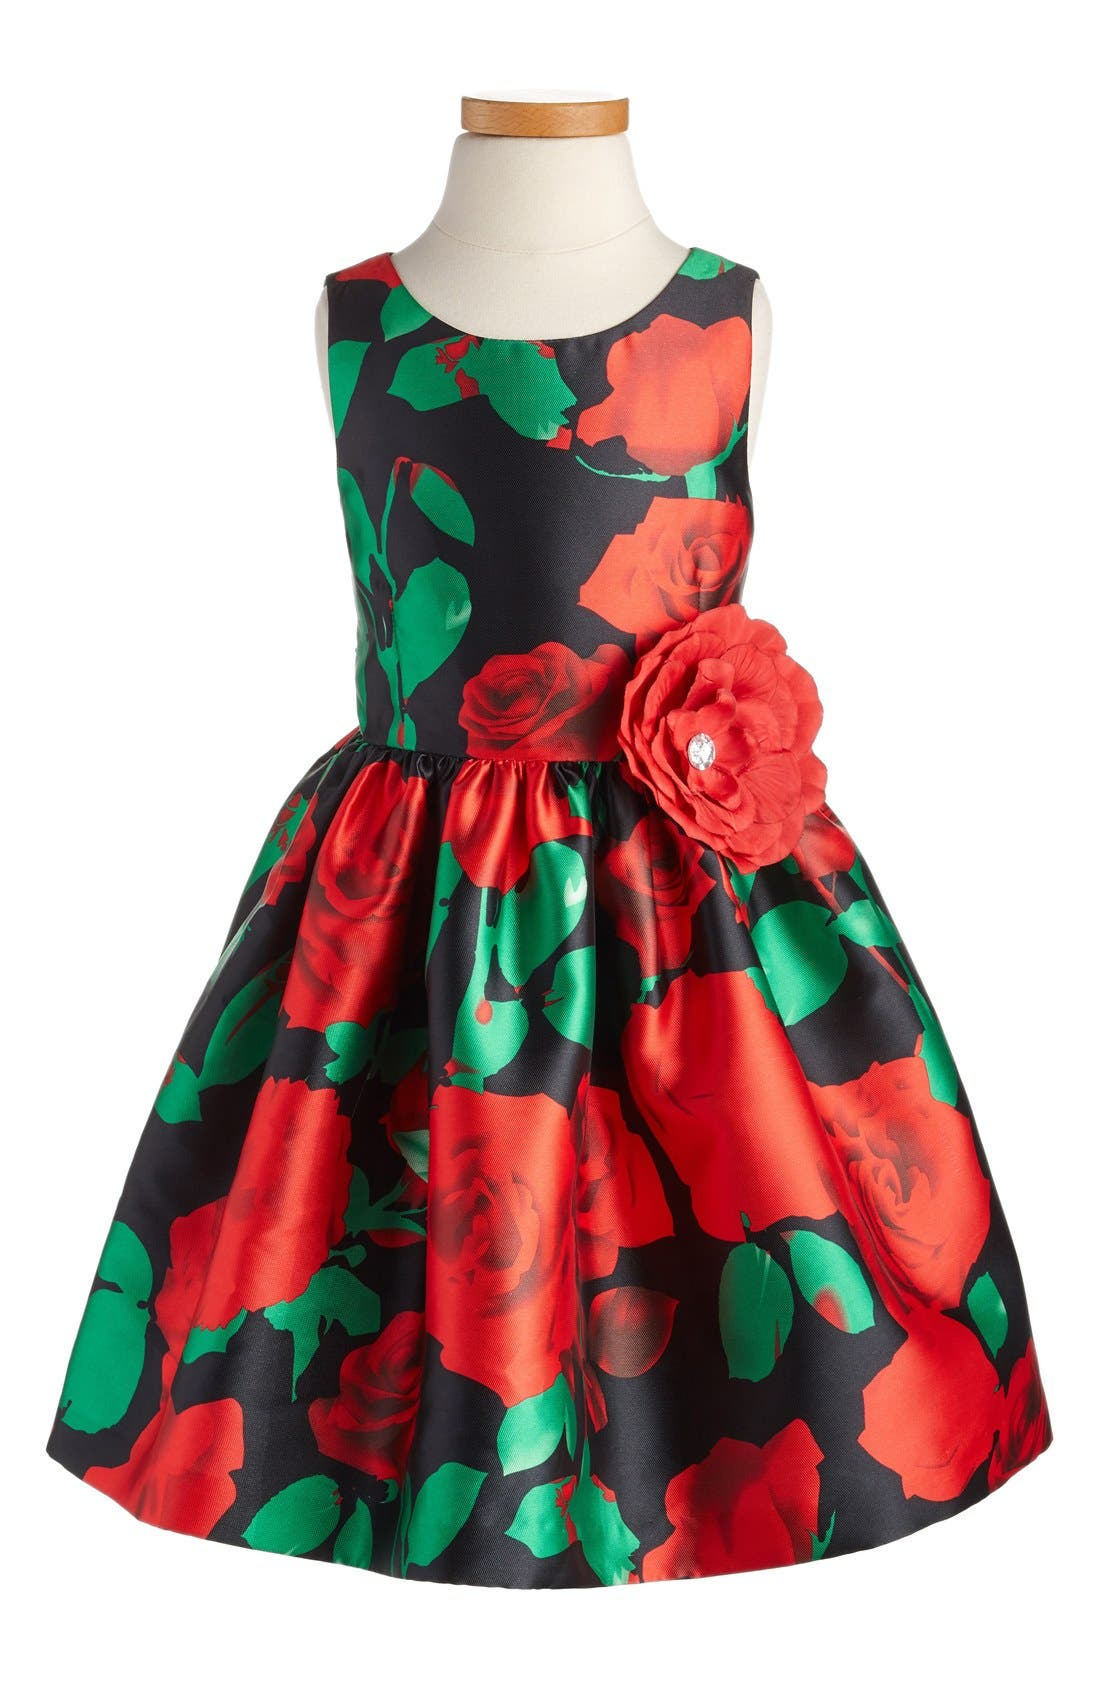 Main Image - Pippa & Julie Rose Print Fit & Flare Dress (Toddler Girls, Little Girls & Big Girls)